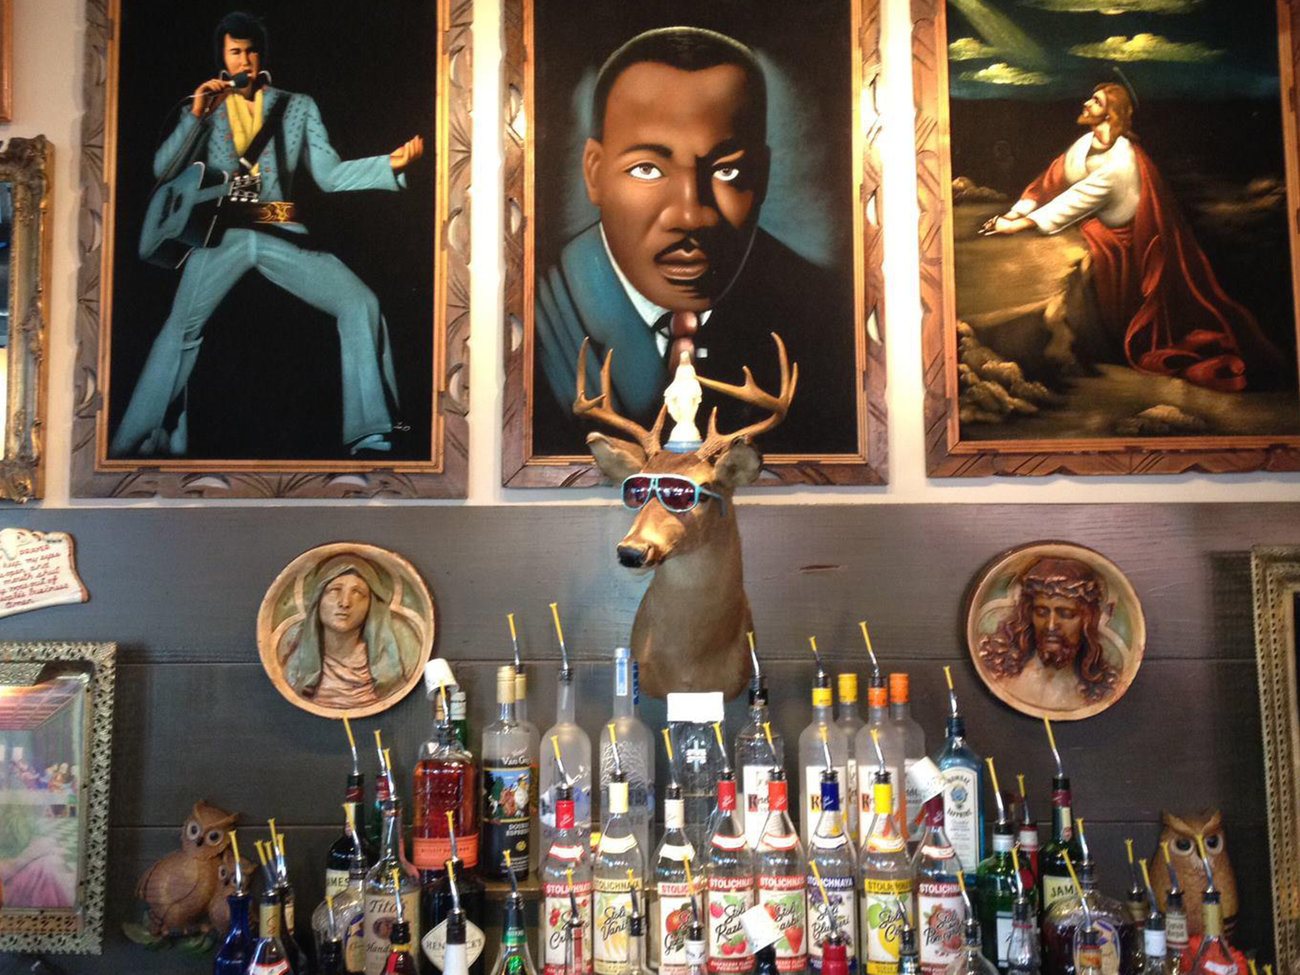 Sister Louisa's Church of the Living Room & Ping Pong Emporium Bar in Atlanta